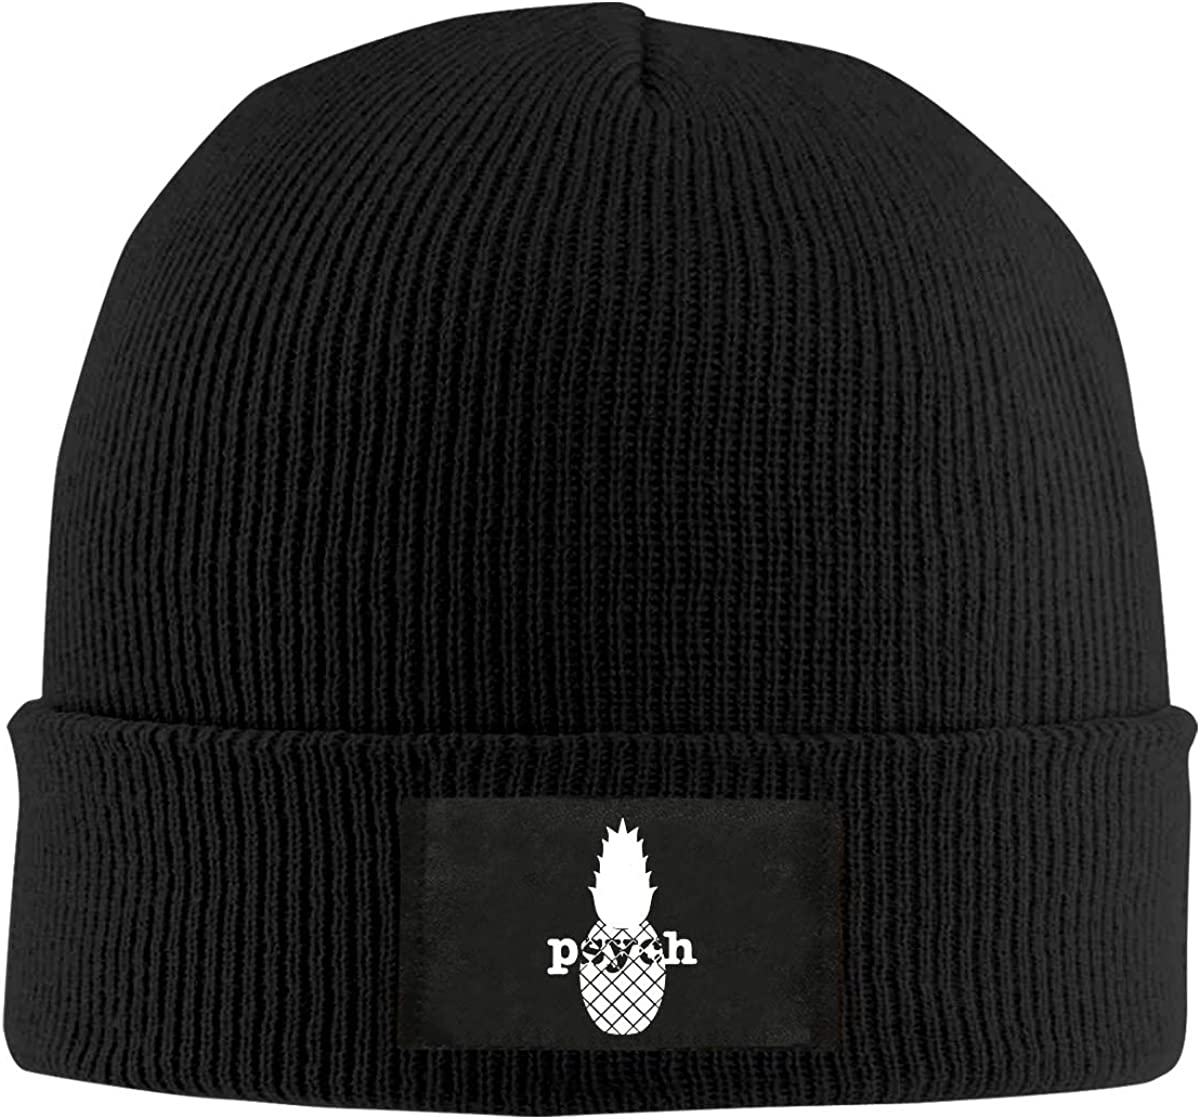 Psych Pineapple1 Women and Men Knitted Hat Fashion Warm Snowboarding Hat